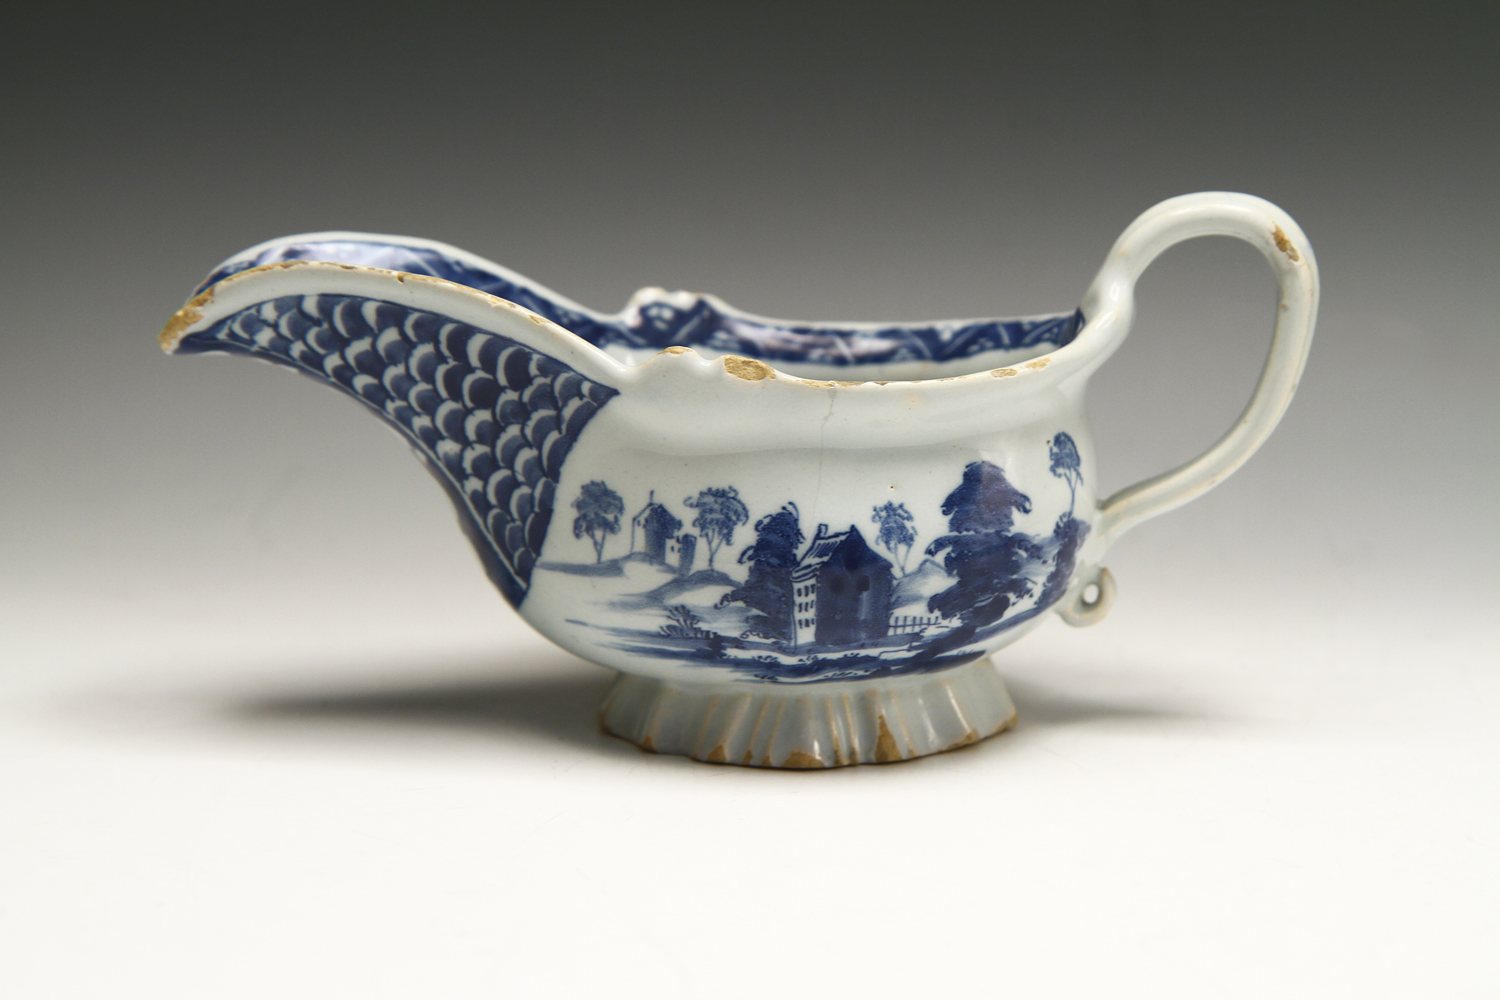 1015 - Interesting small English delft sauceboat c 1750-55